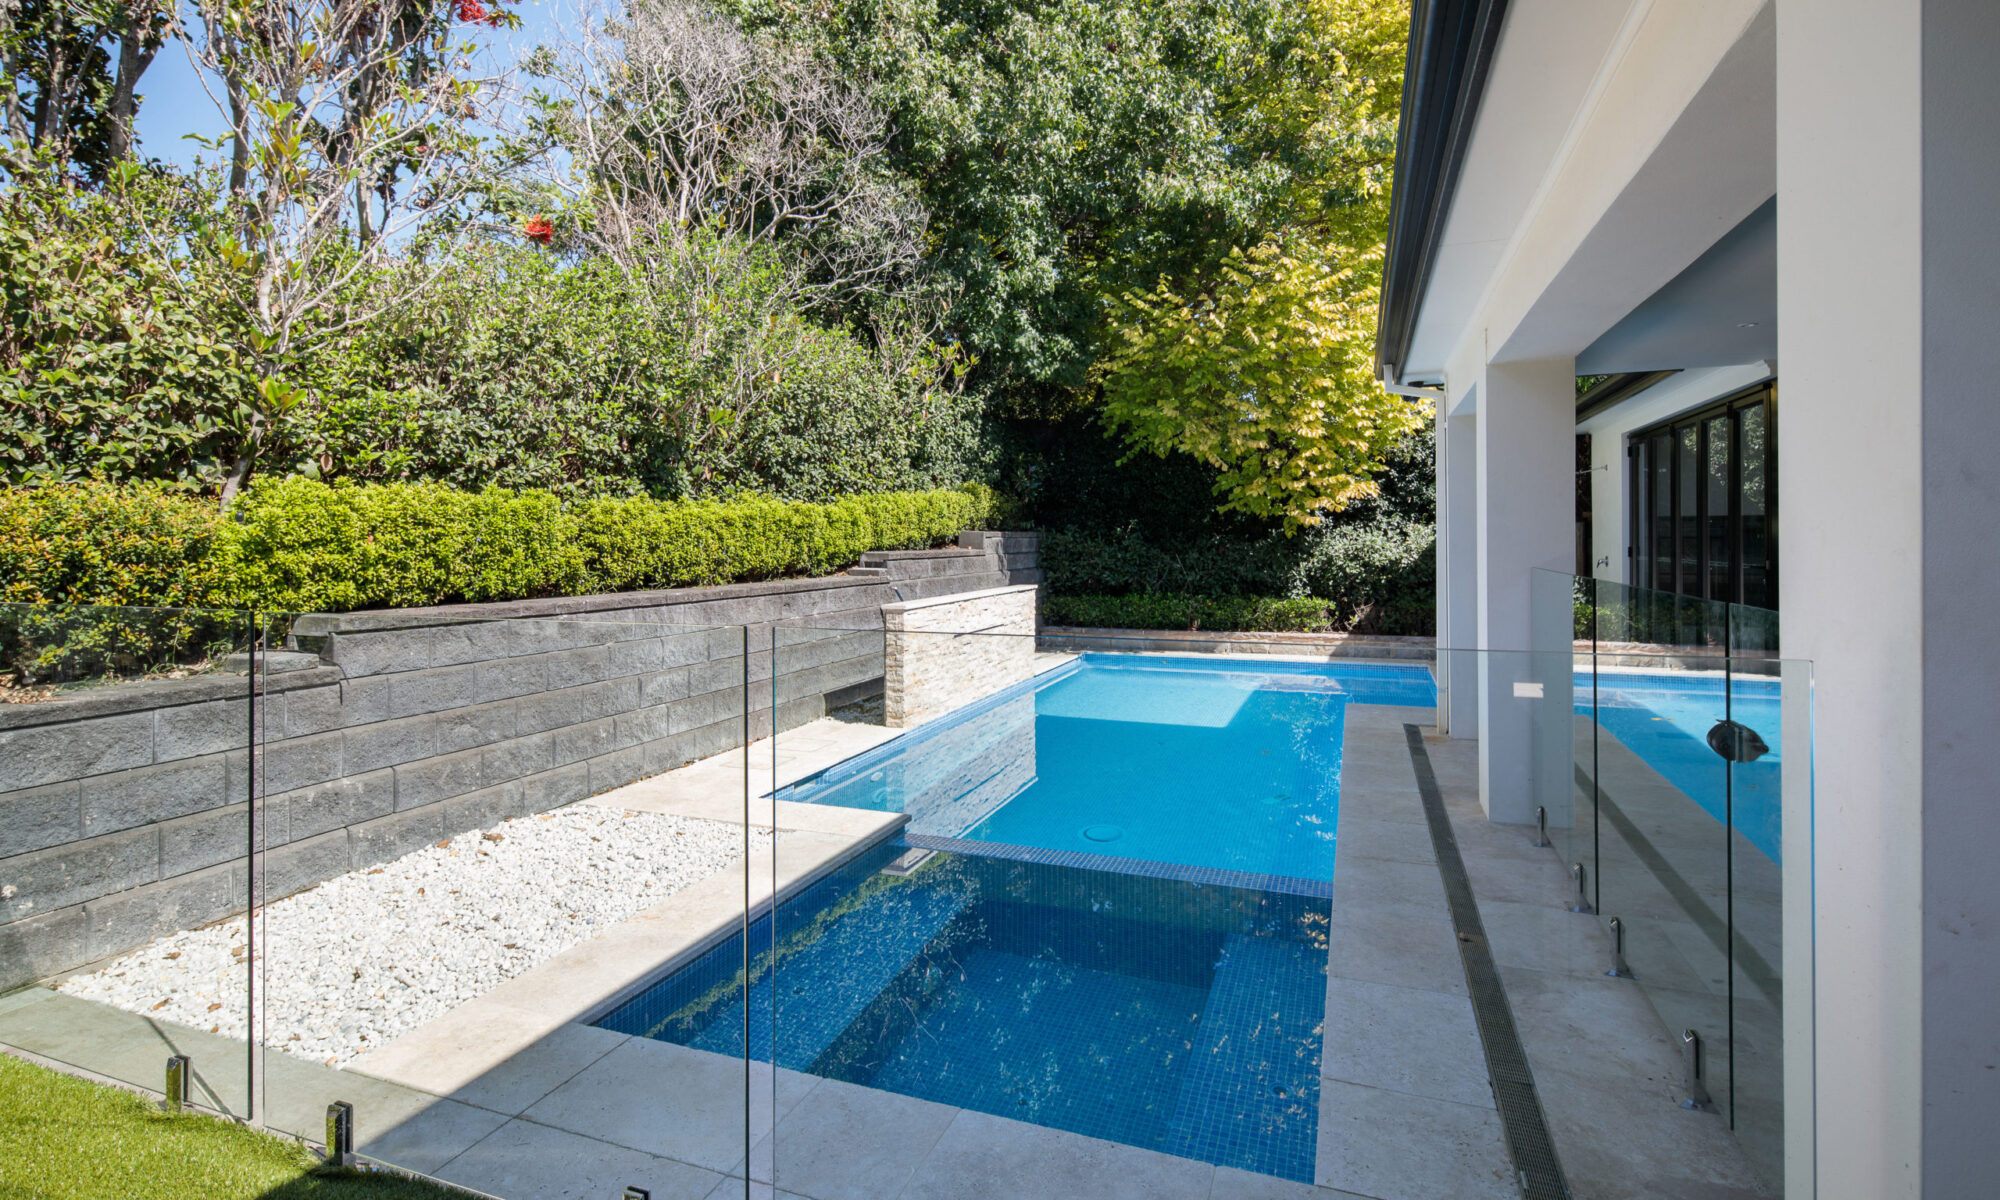 pool fencing laws South Australia